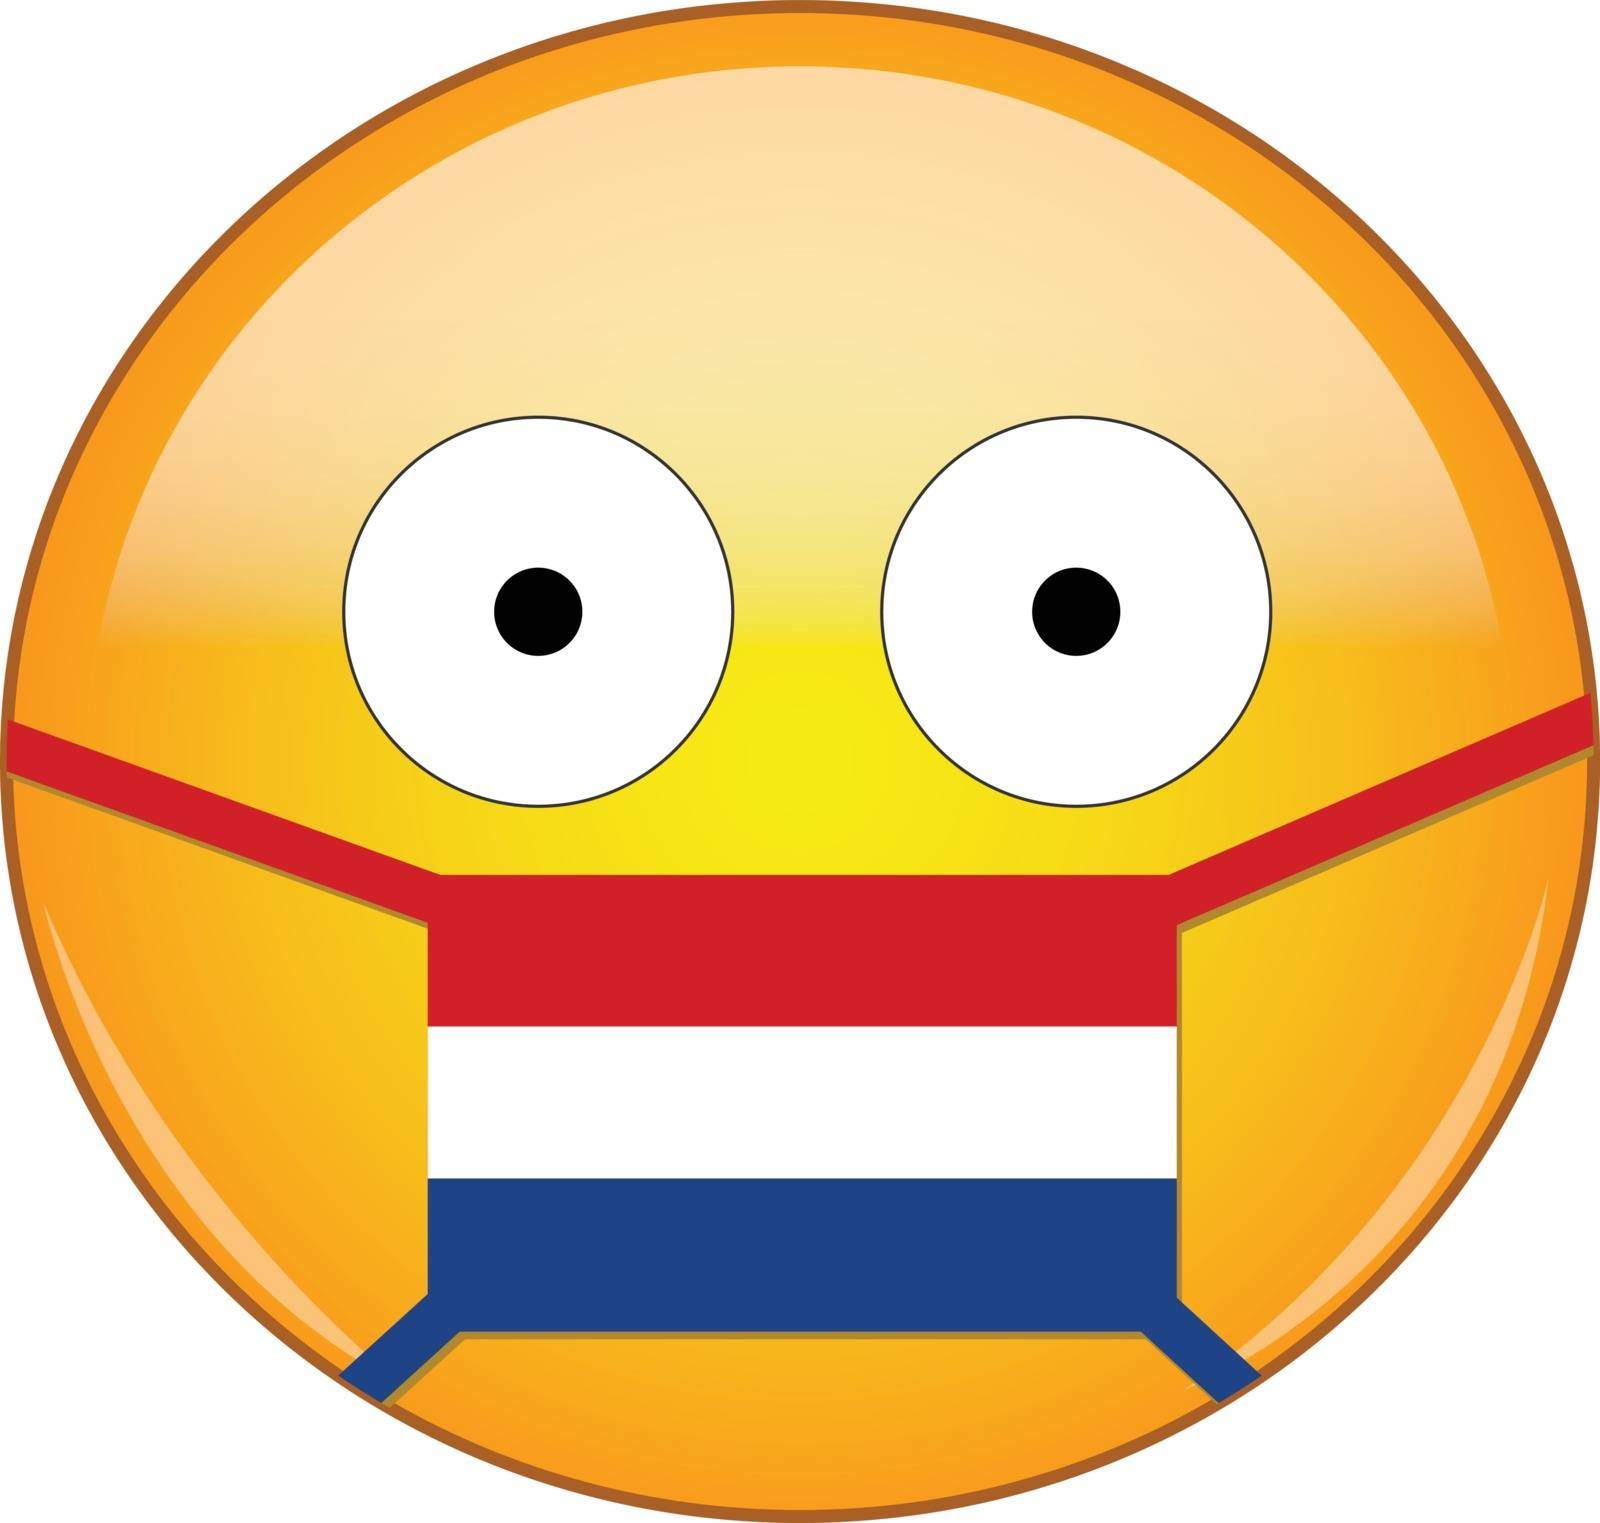 Yellow scared emoji in Dutch medical mask protecting from SARS, coronavirus, bird flu and other viruses, germs and bacteria and contagious disease as well as toxic smog in Netherlands.